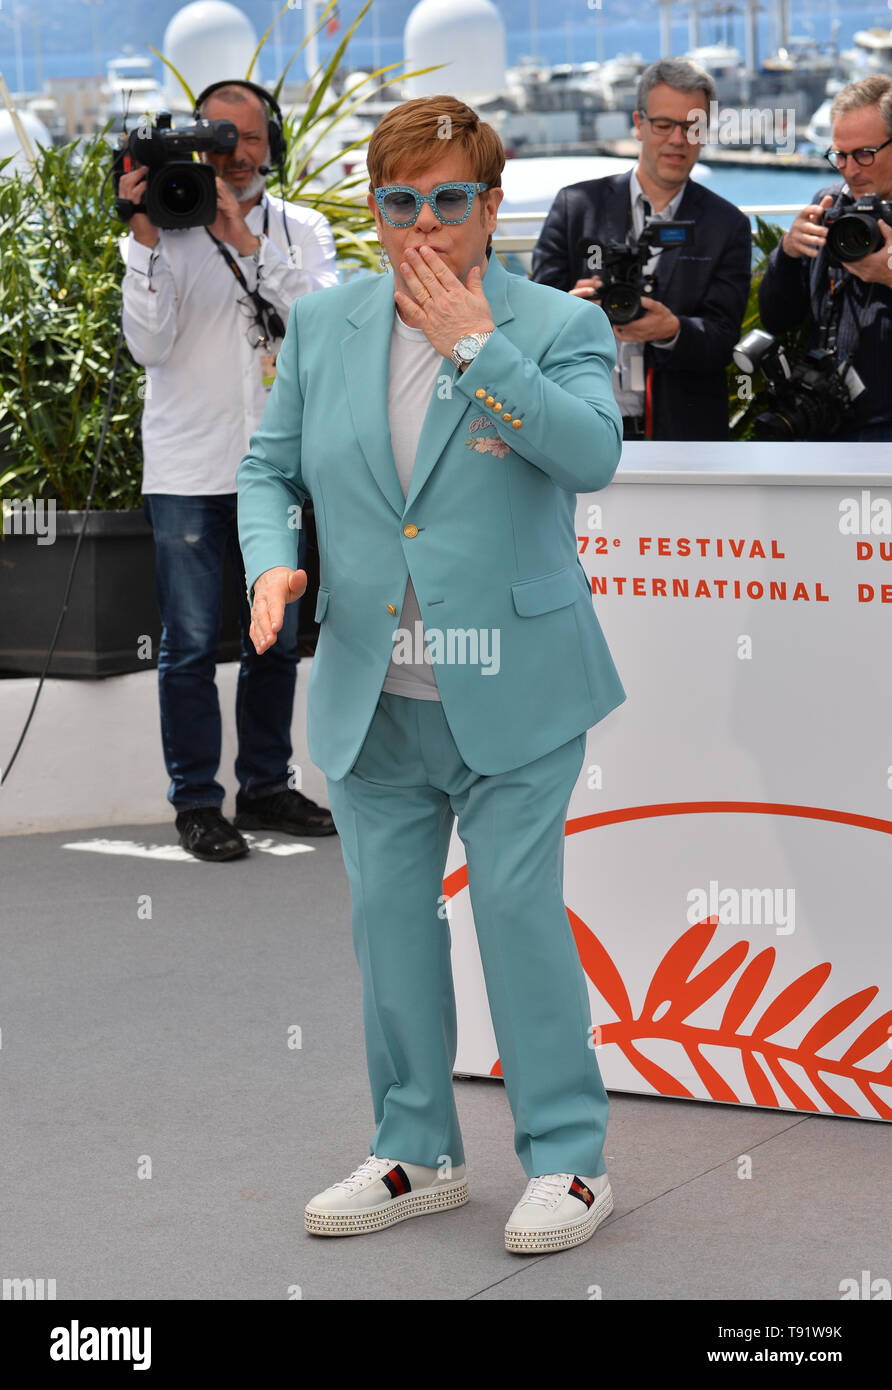 Cannes, France. 16 mai, 2019. CANNES, FRANCE. 16 mai 2019 : Elton John à la photocall pour la 'Rocketman' à la 72e Festival de Cannes. Photo Credit : Paul Smith/Alamy Live News Banque D'Images